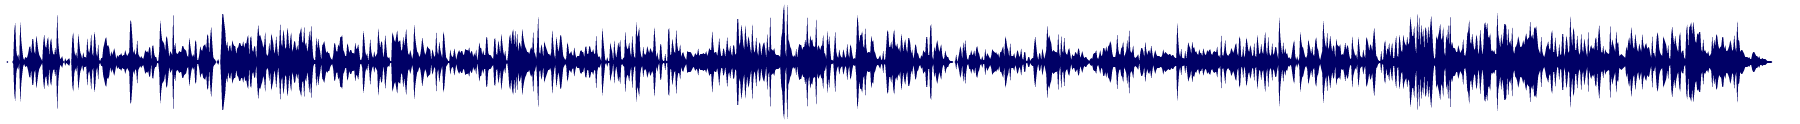 waveform of track #70015